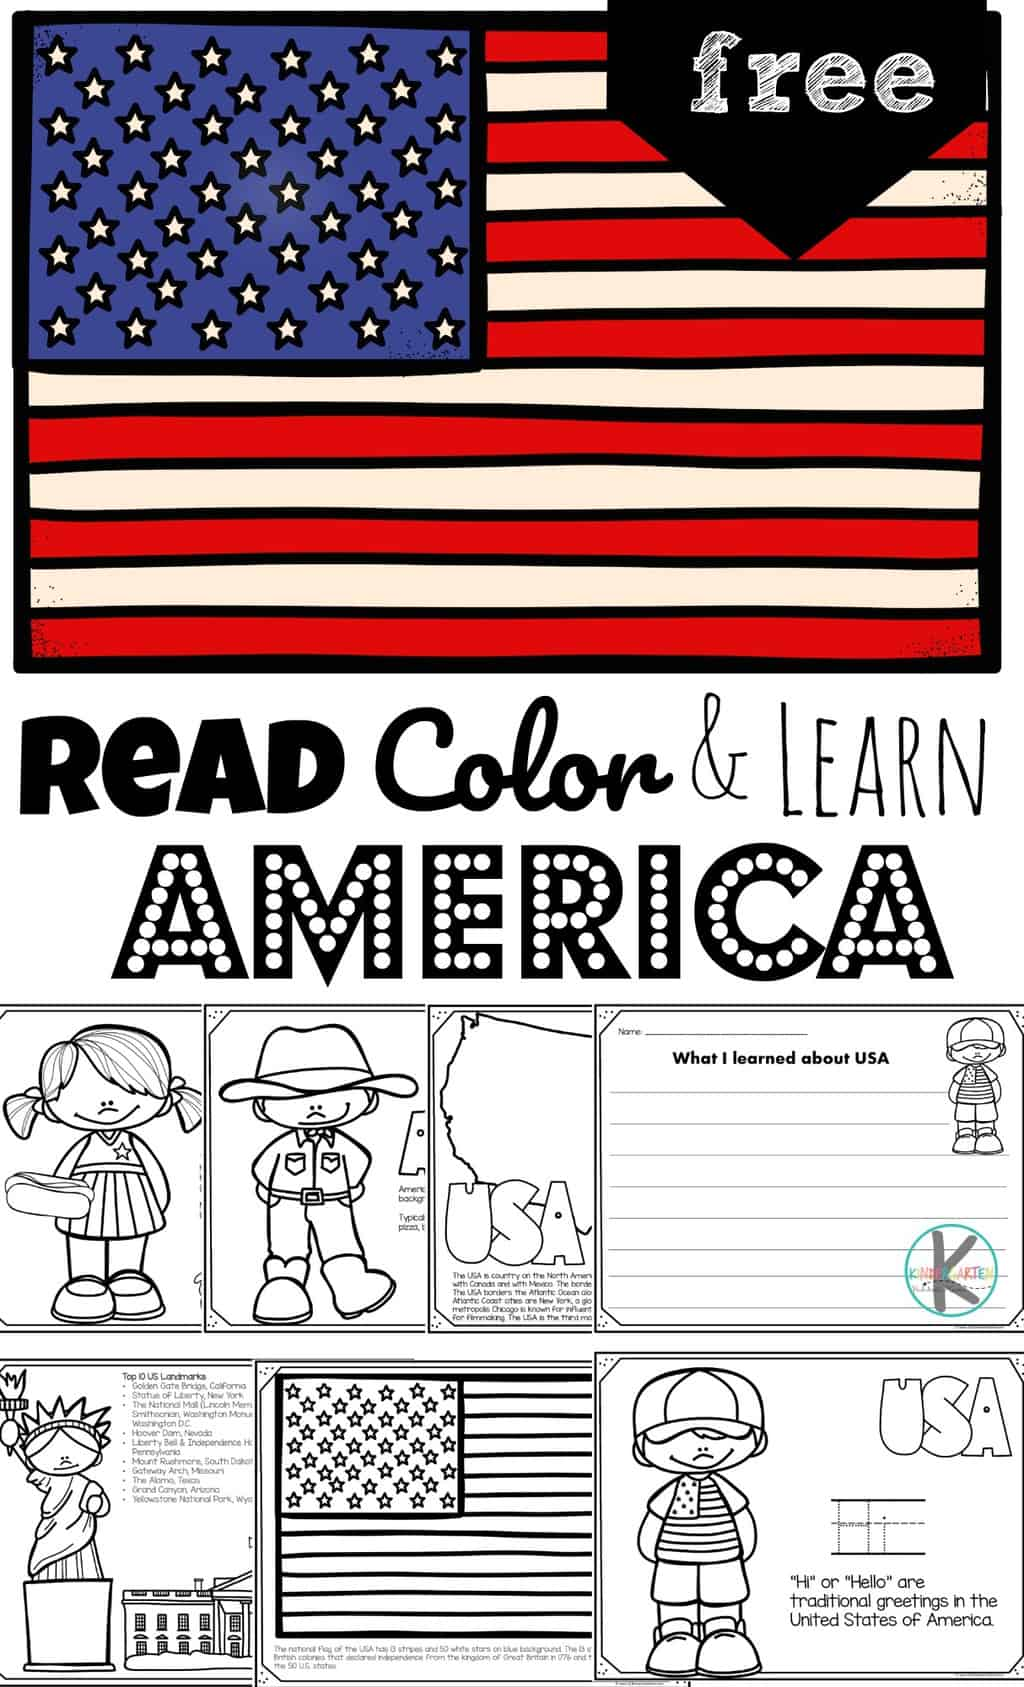 Free Read Color And Learn About America